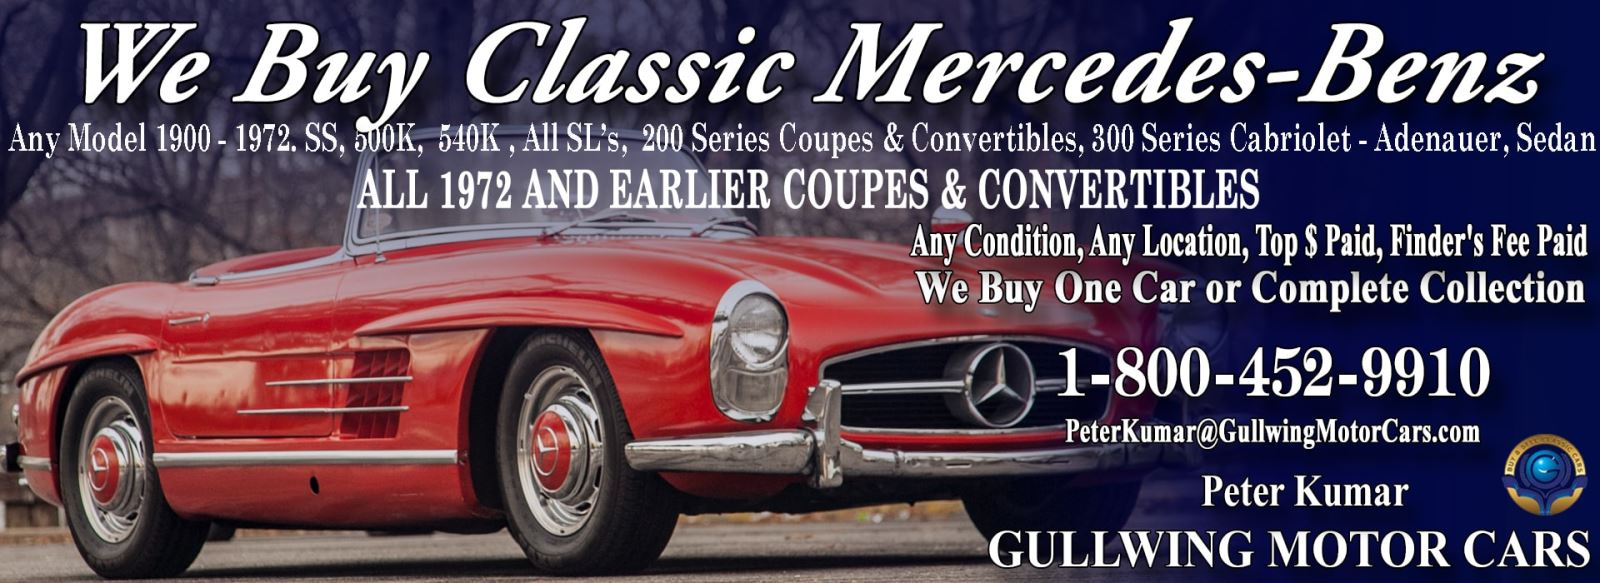 Classic Mercedes 600 for sale, we buy vintage Mercedes 600. Call Peter Kumar. Gullwing Motor